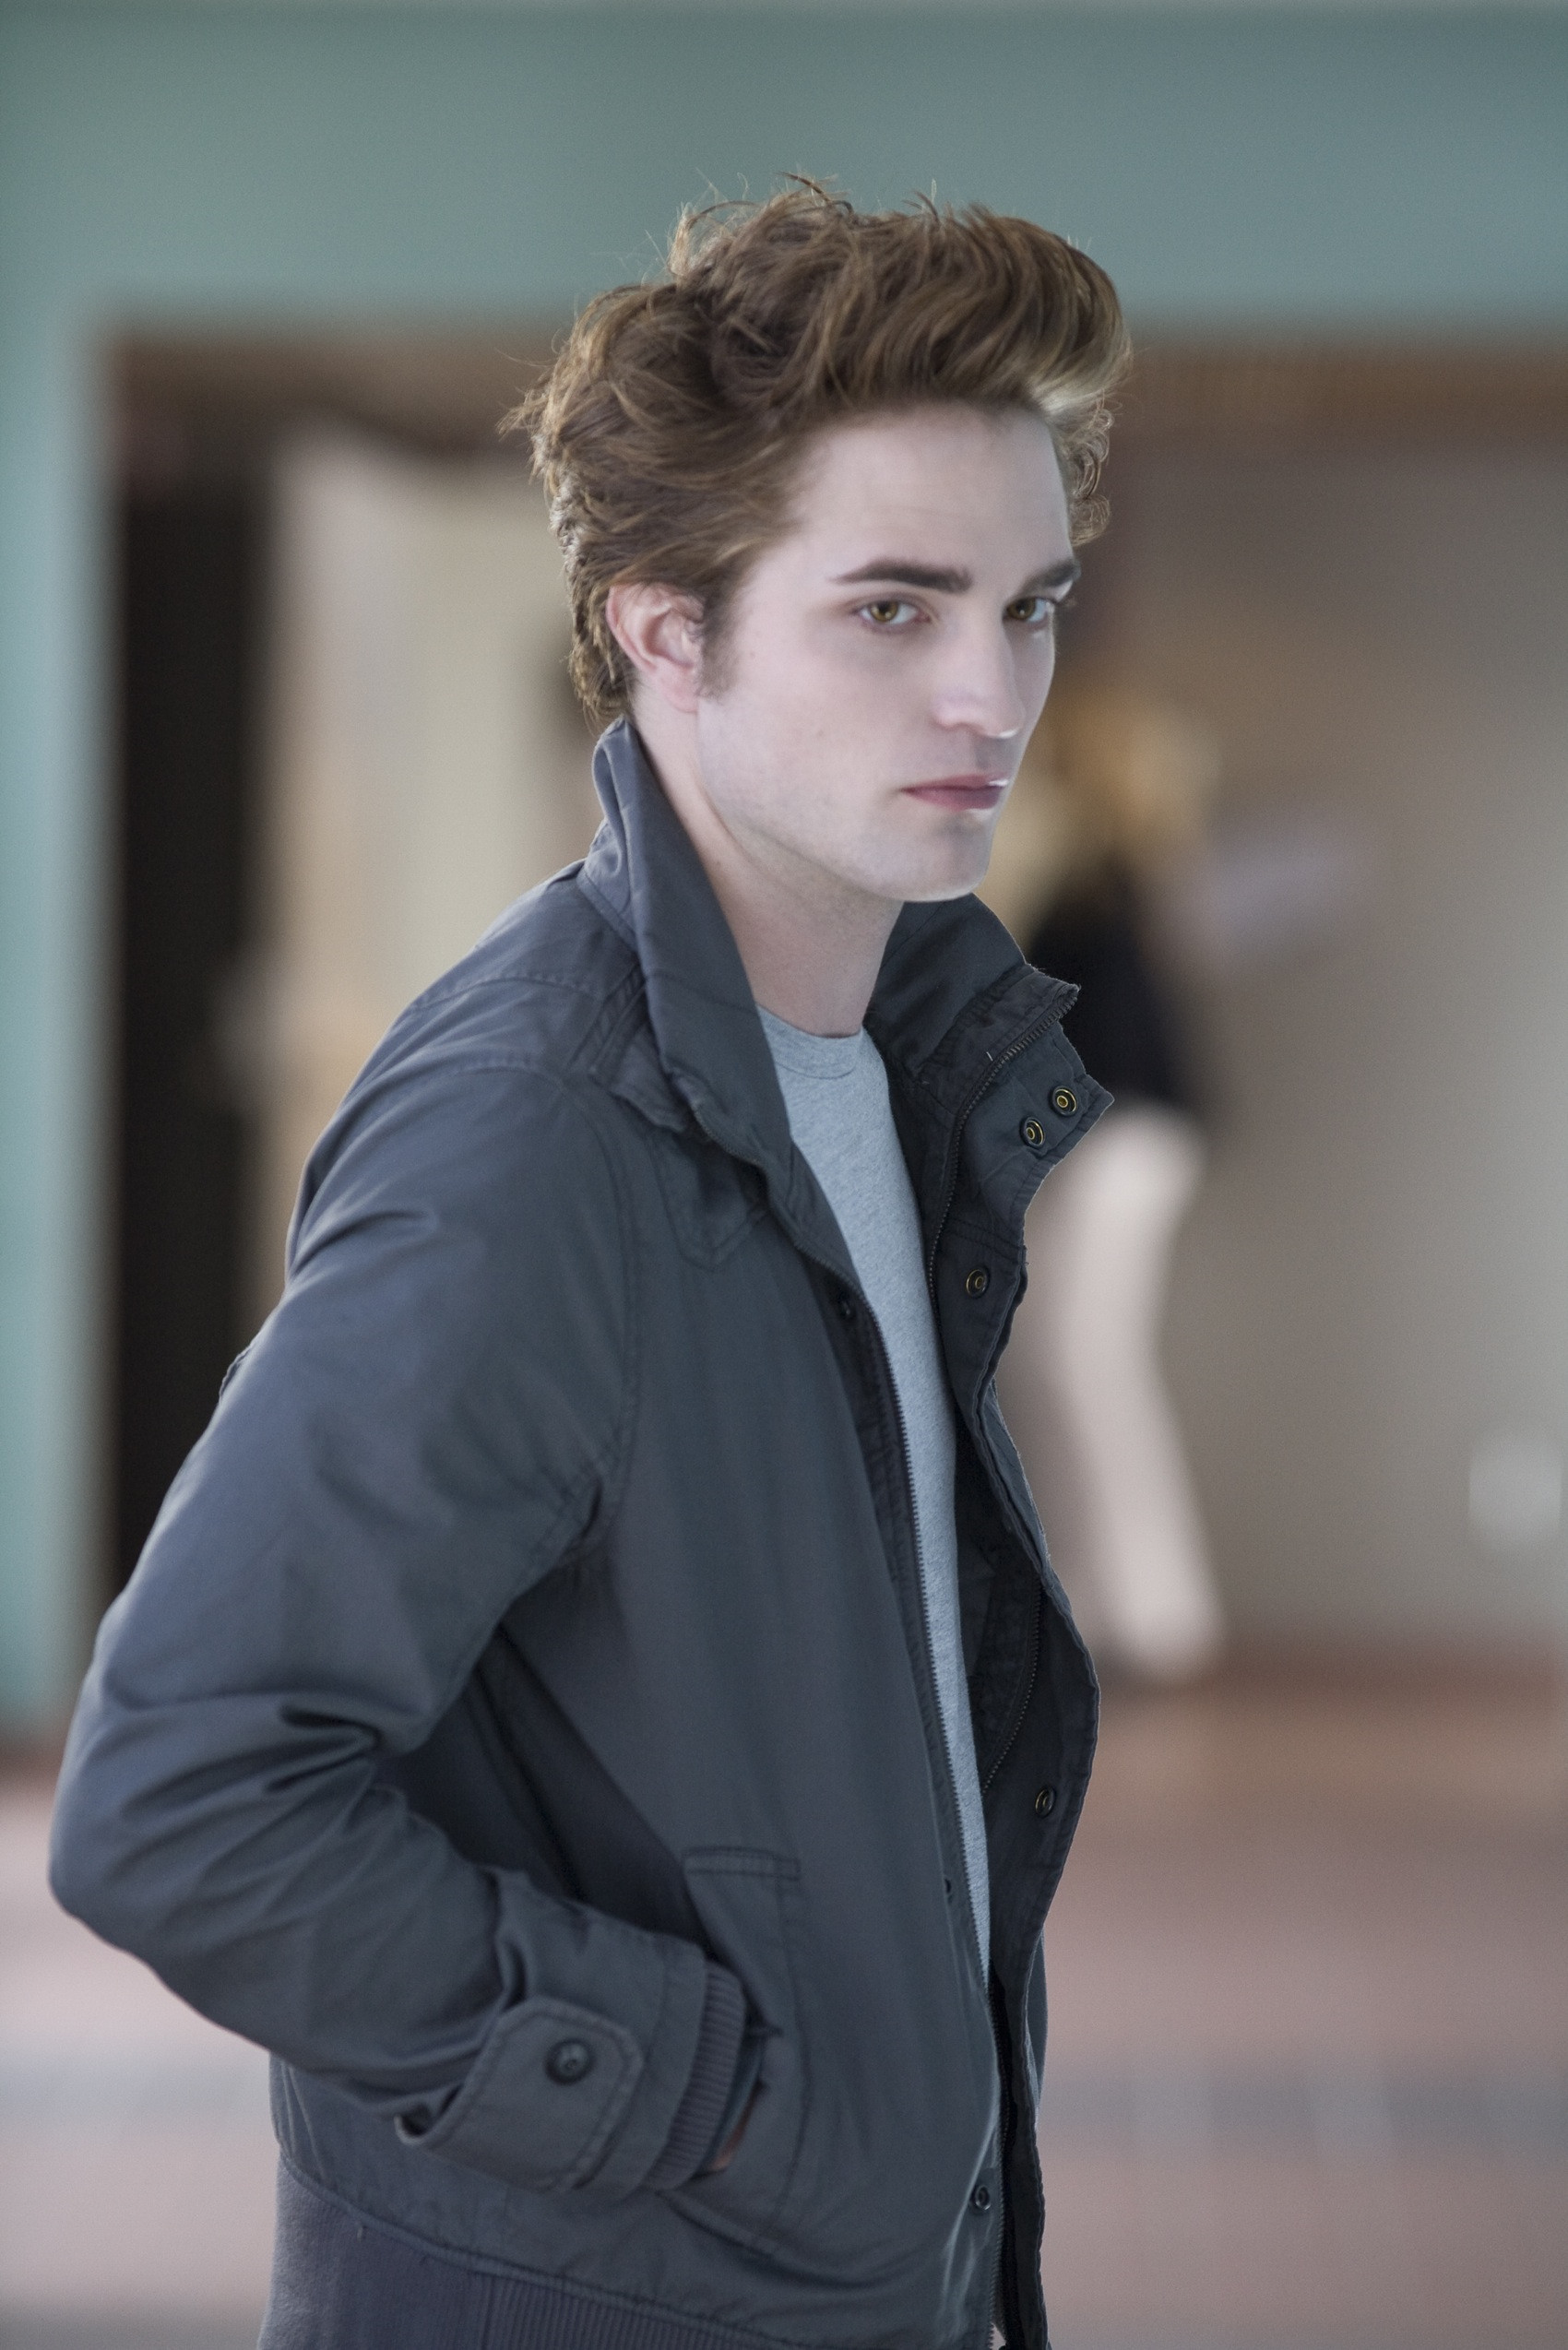 Imagens edward in twilight edward cullen photo 30128800 Twilight edward photos